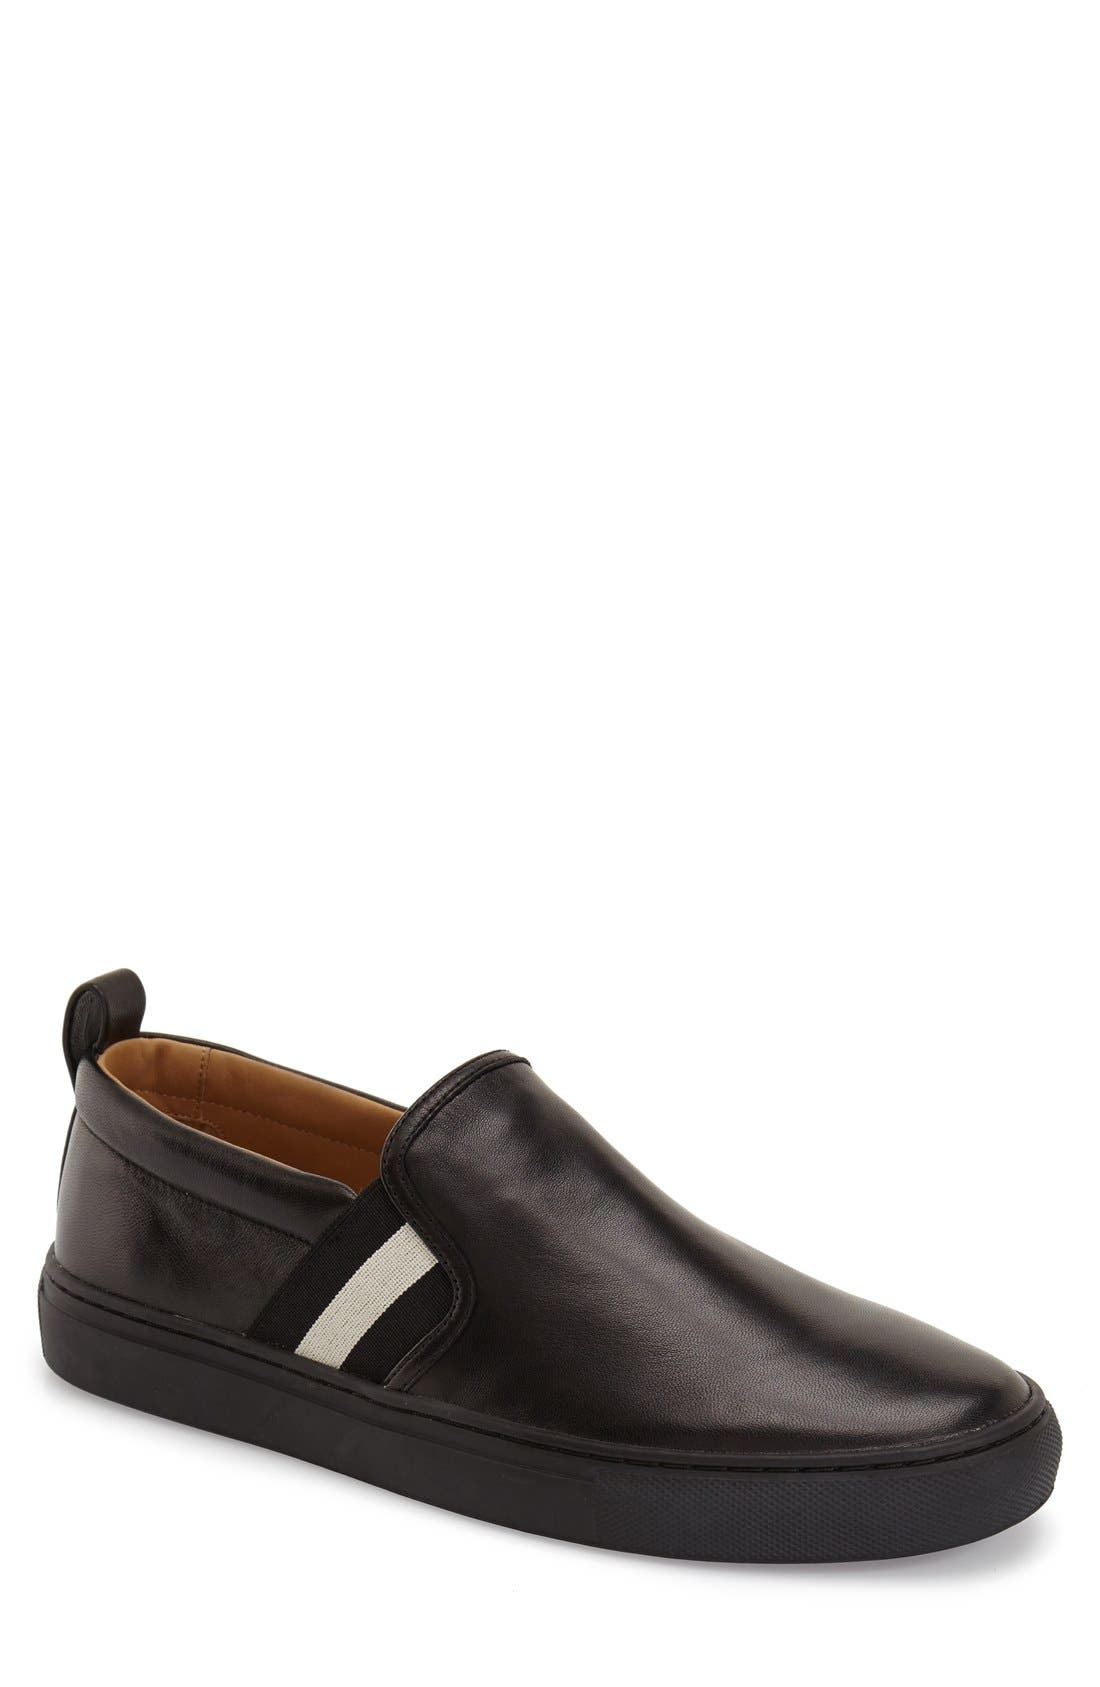 'Herald' Slip-On,                             Main thumbnail 1, color,                             BLACK LEATHER